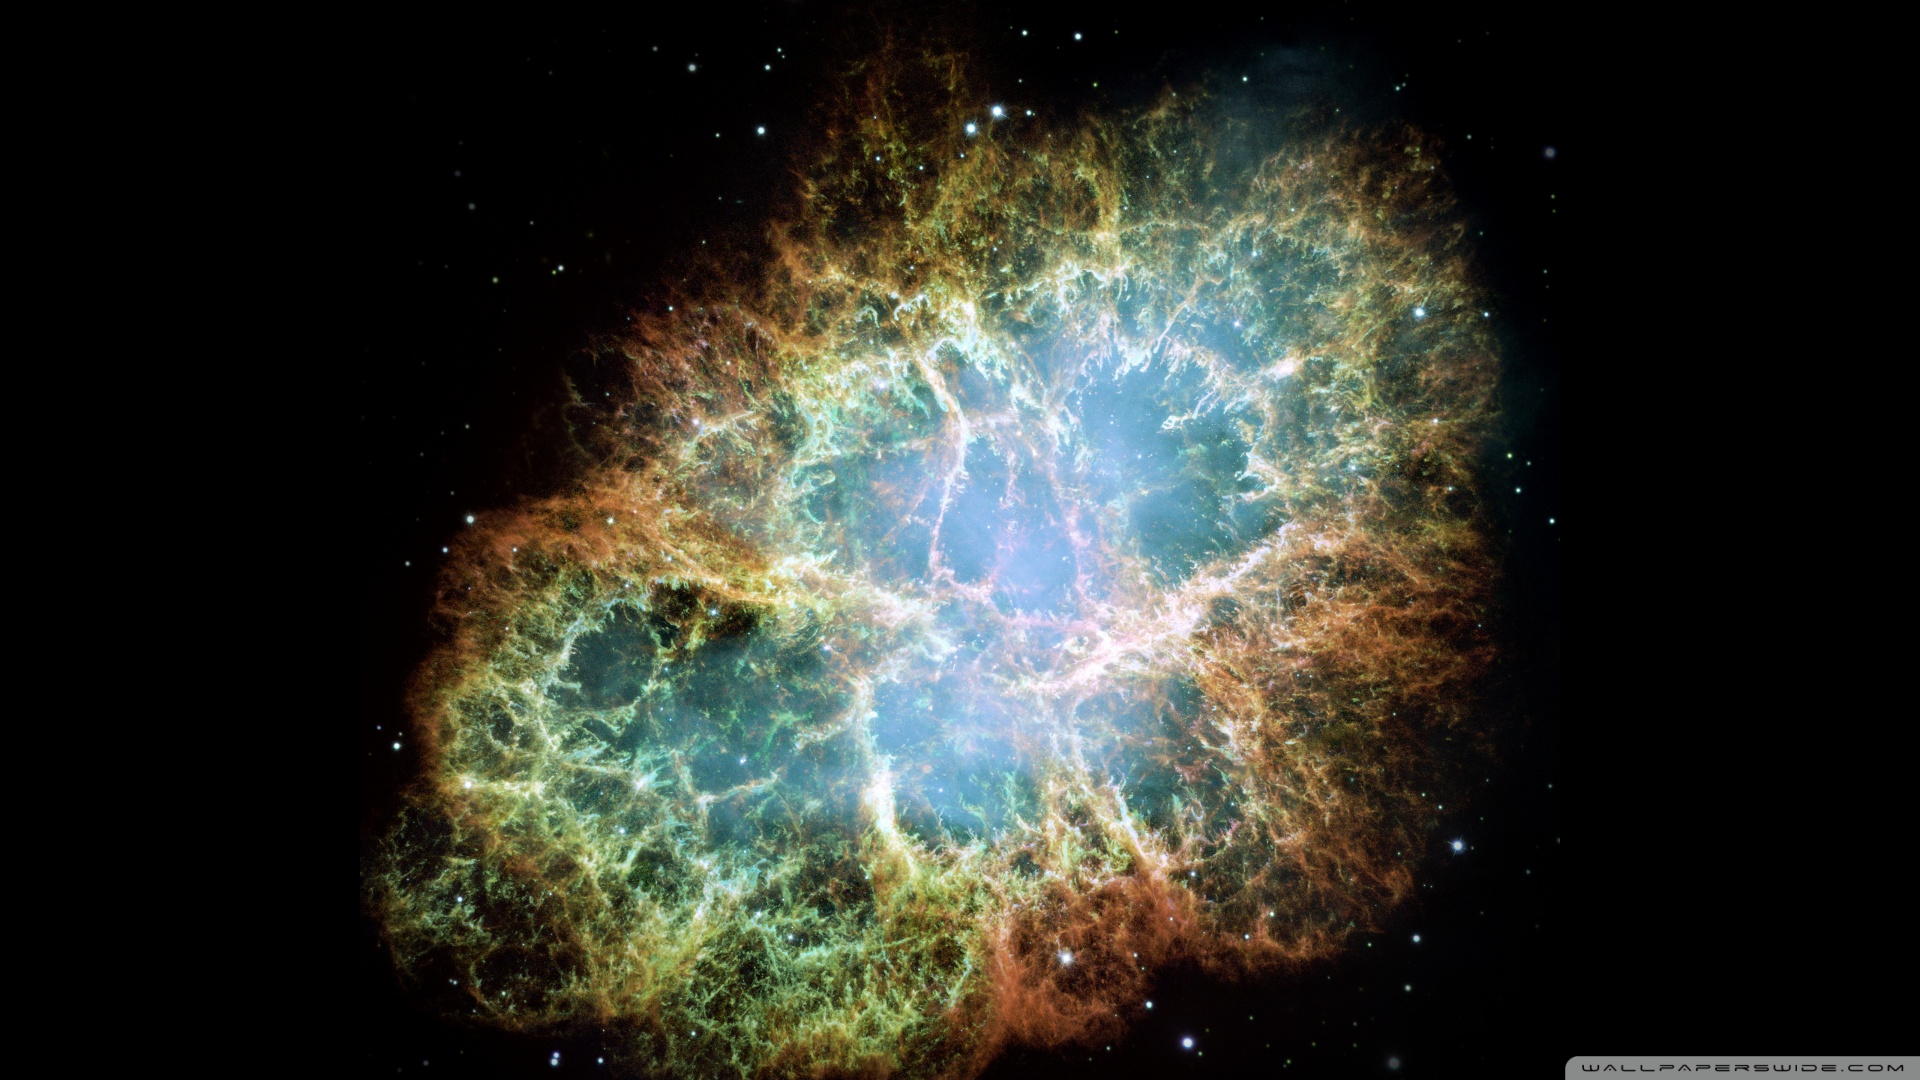 Crab Nebula Wallpaper 1920x1080 Crab Nebula 1920x1080